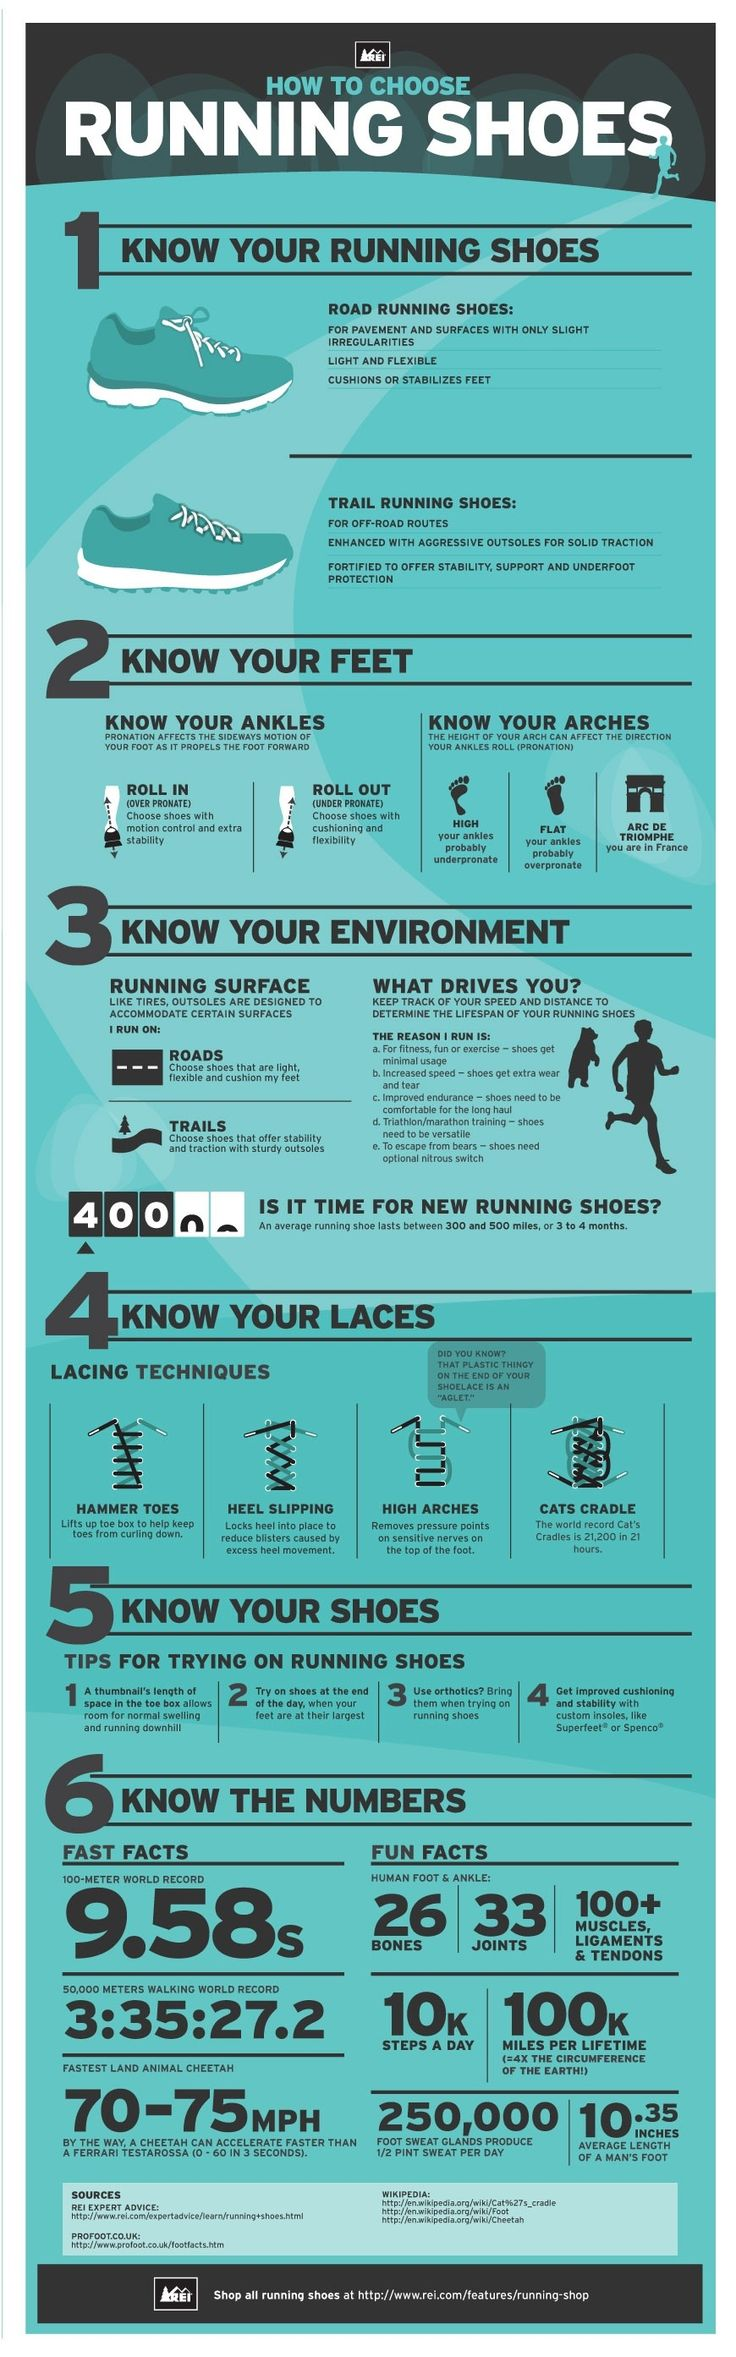 Get to know your shoes and go for a run, walk, jog, hike, ect.